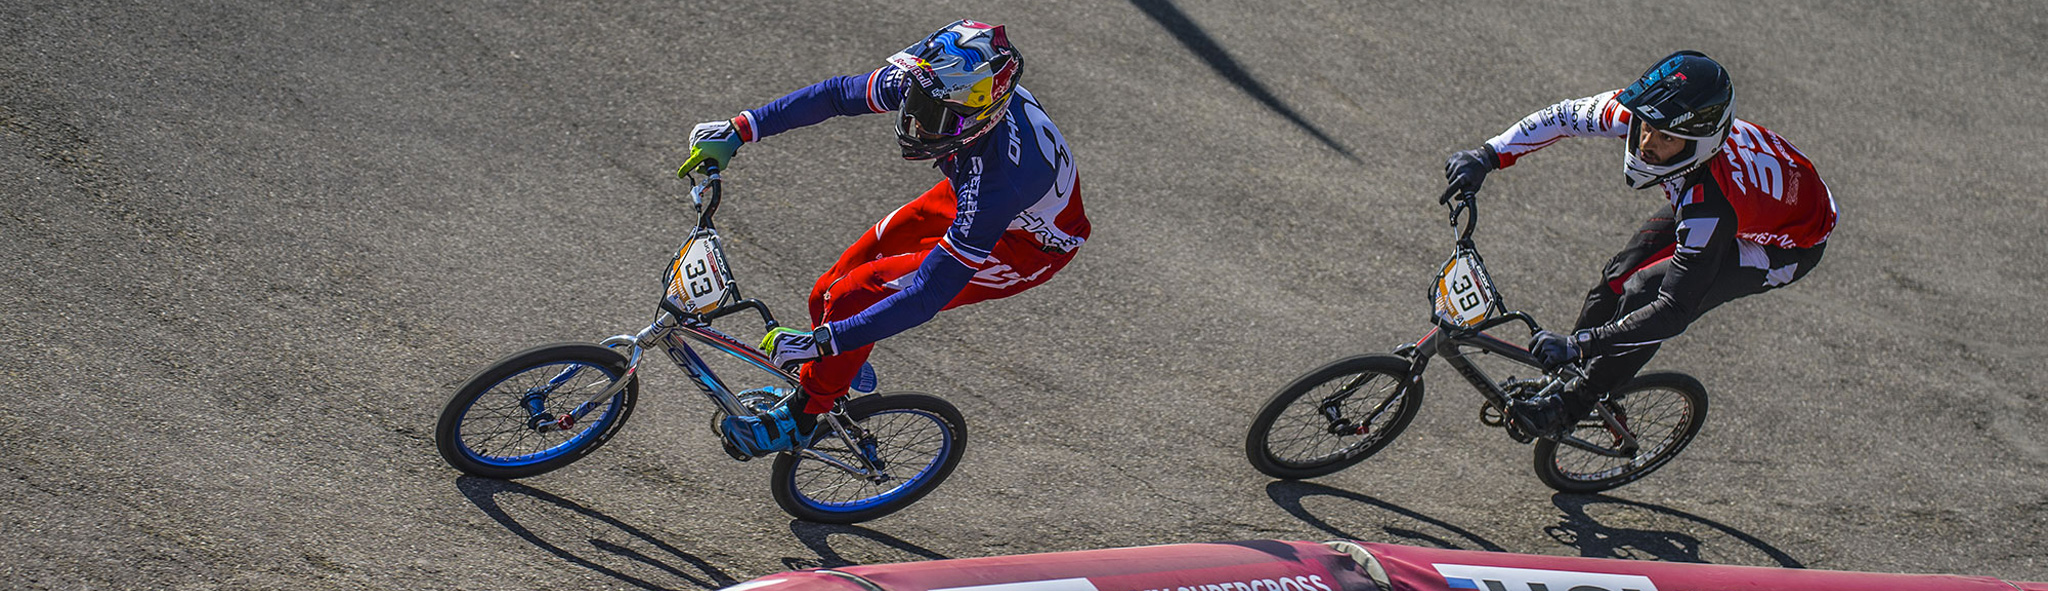 Chase BMX Video Race Report Recap – UCI BMX SX World Cup #3